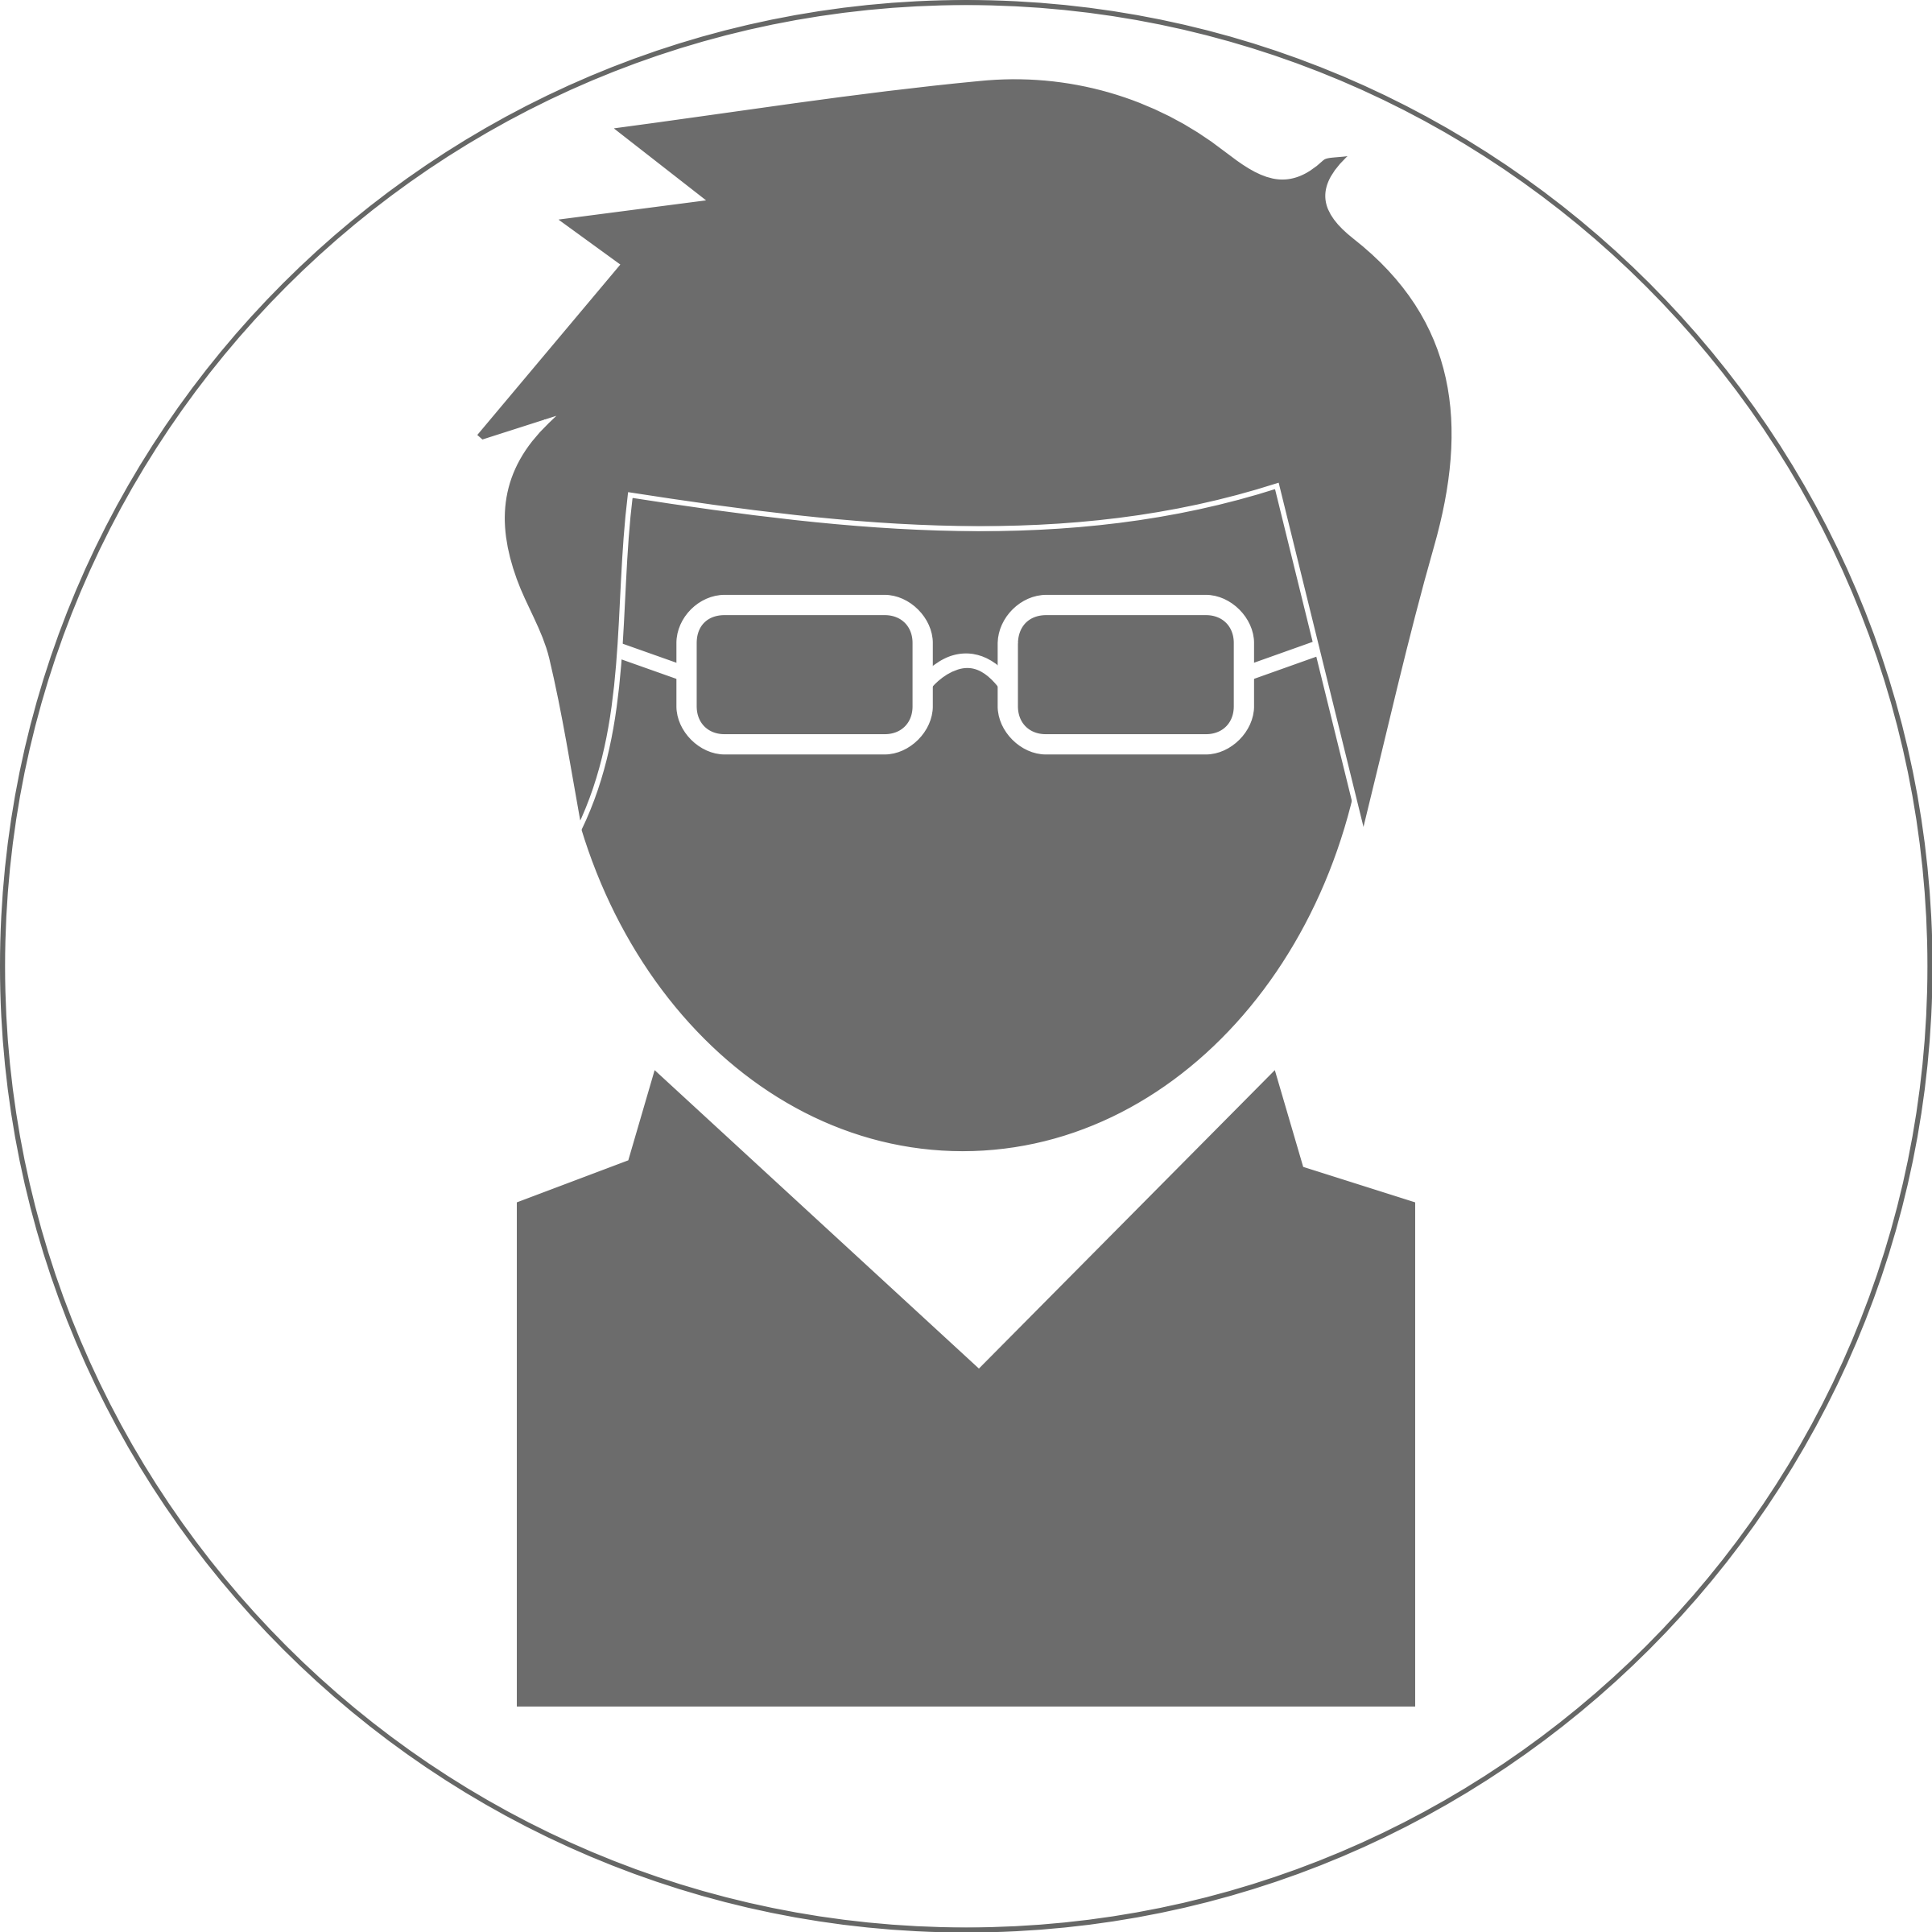 Icon engineer grey on. Engineering clipart black and white